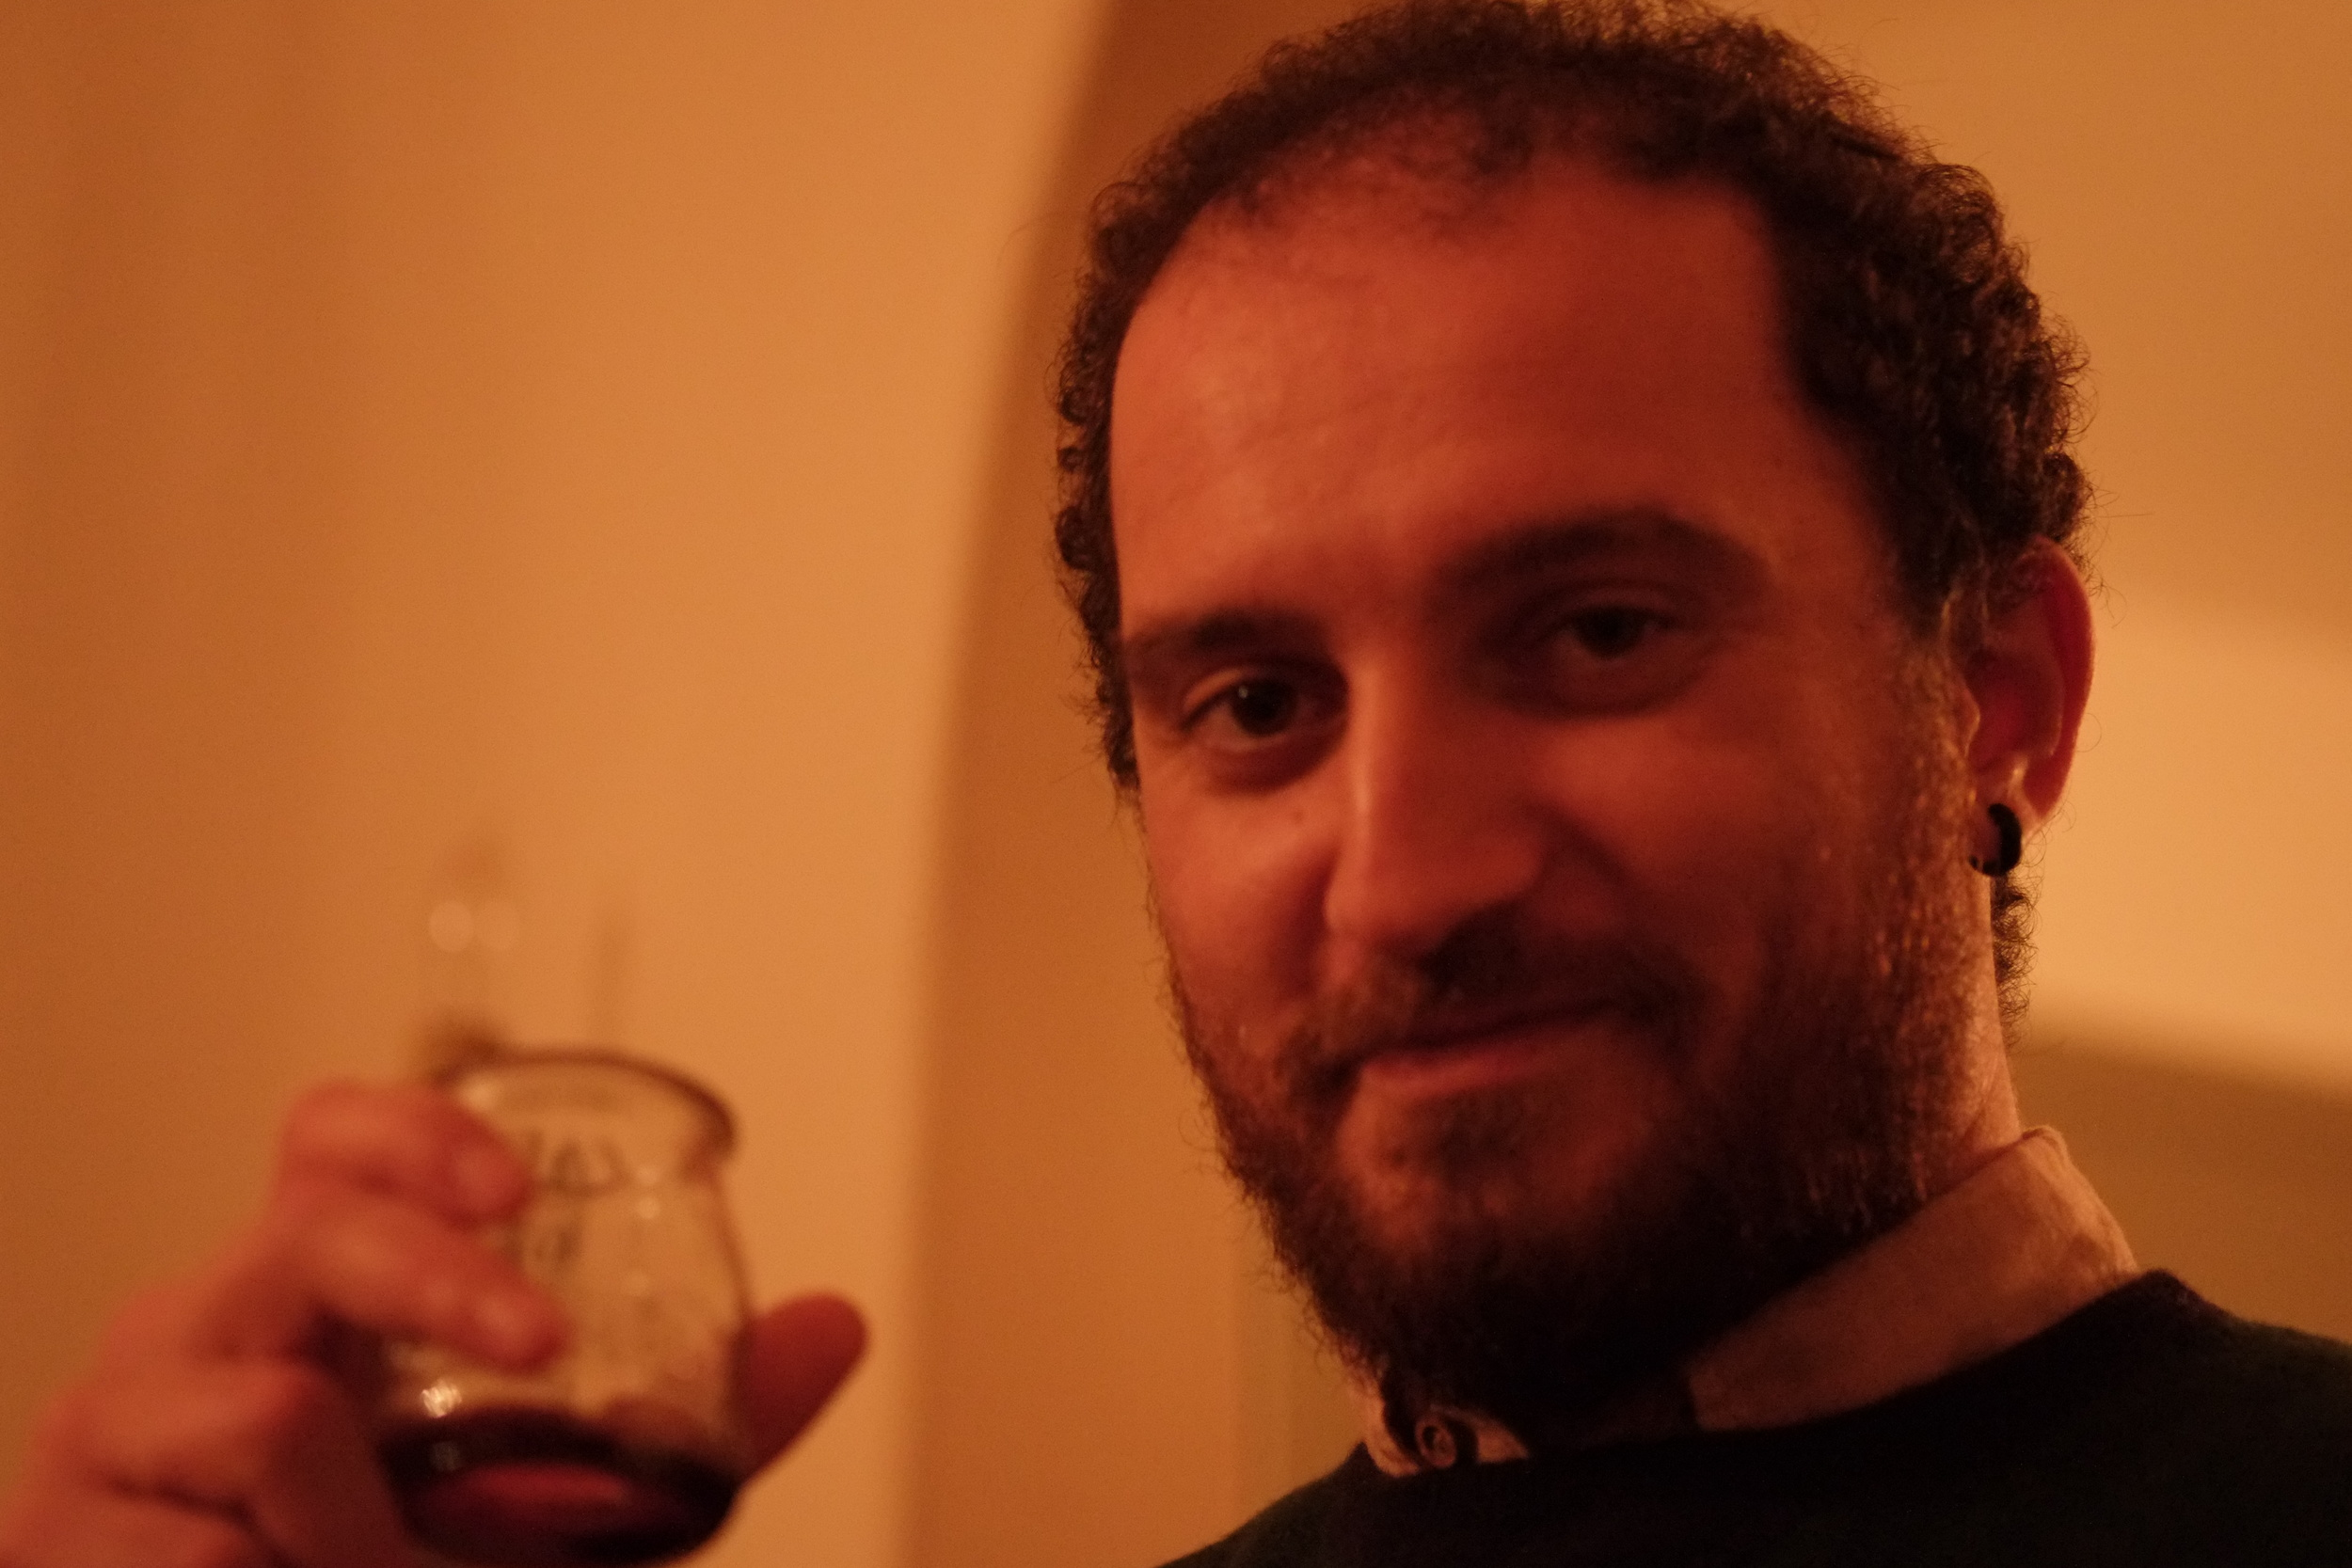 francesco at the house, surprised that the french can make a decent red wine....january, 2015